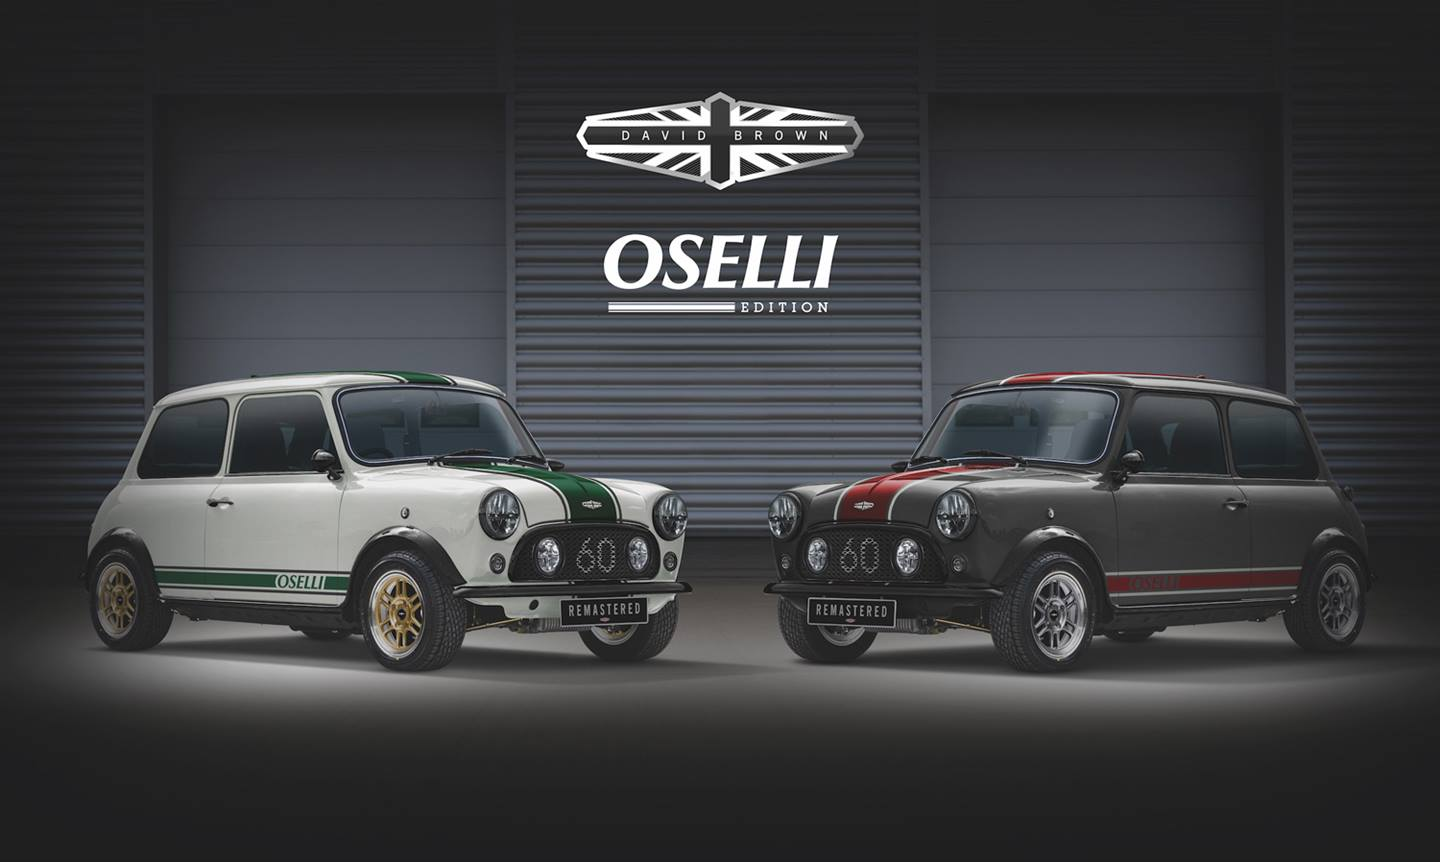 British manufacturer David Brown Automotive has announced the Mini Remastered Oselli Edition – its own rendition of the iconic urban compact with modern tech. The four-door version will go on sale priced at £98,000, and the performance version will come at a £10,000 premium. The total production volume will not exceed 60 copies.